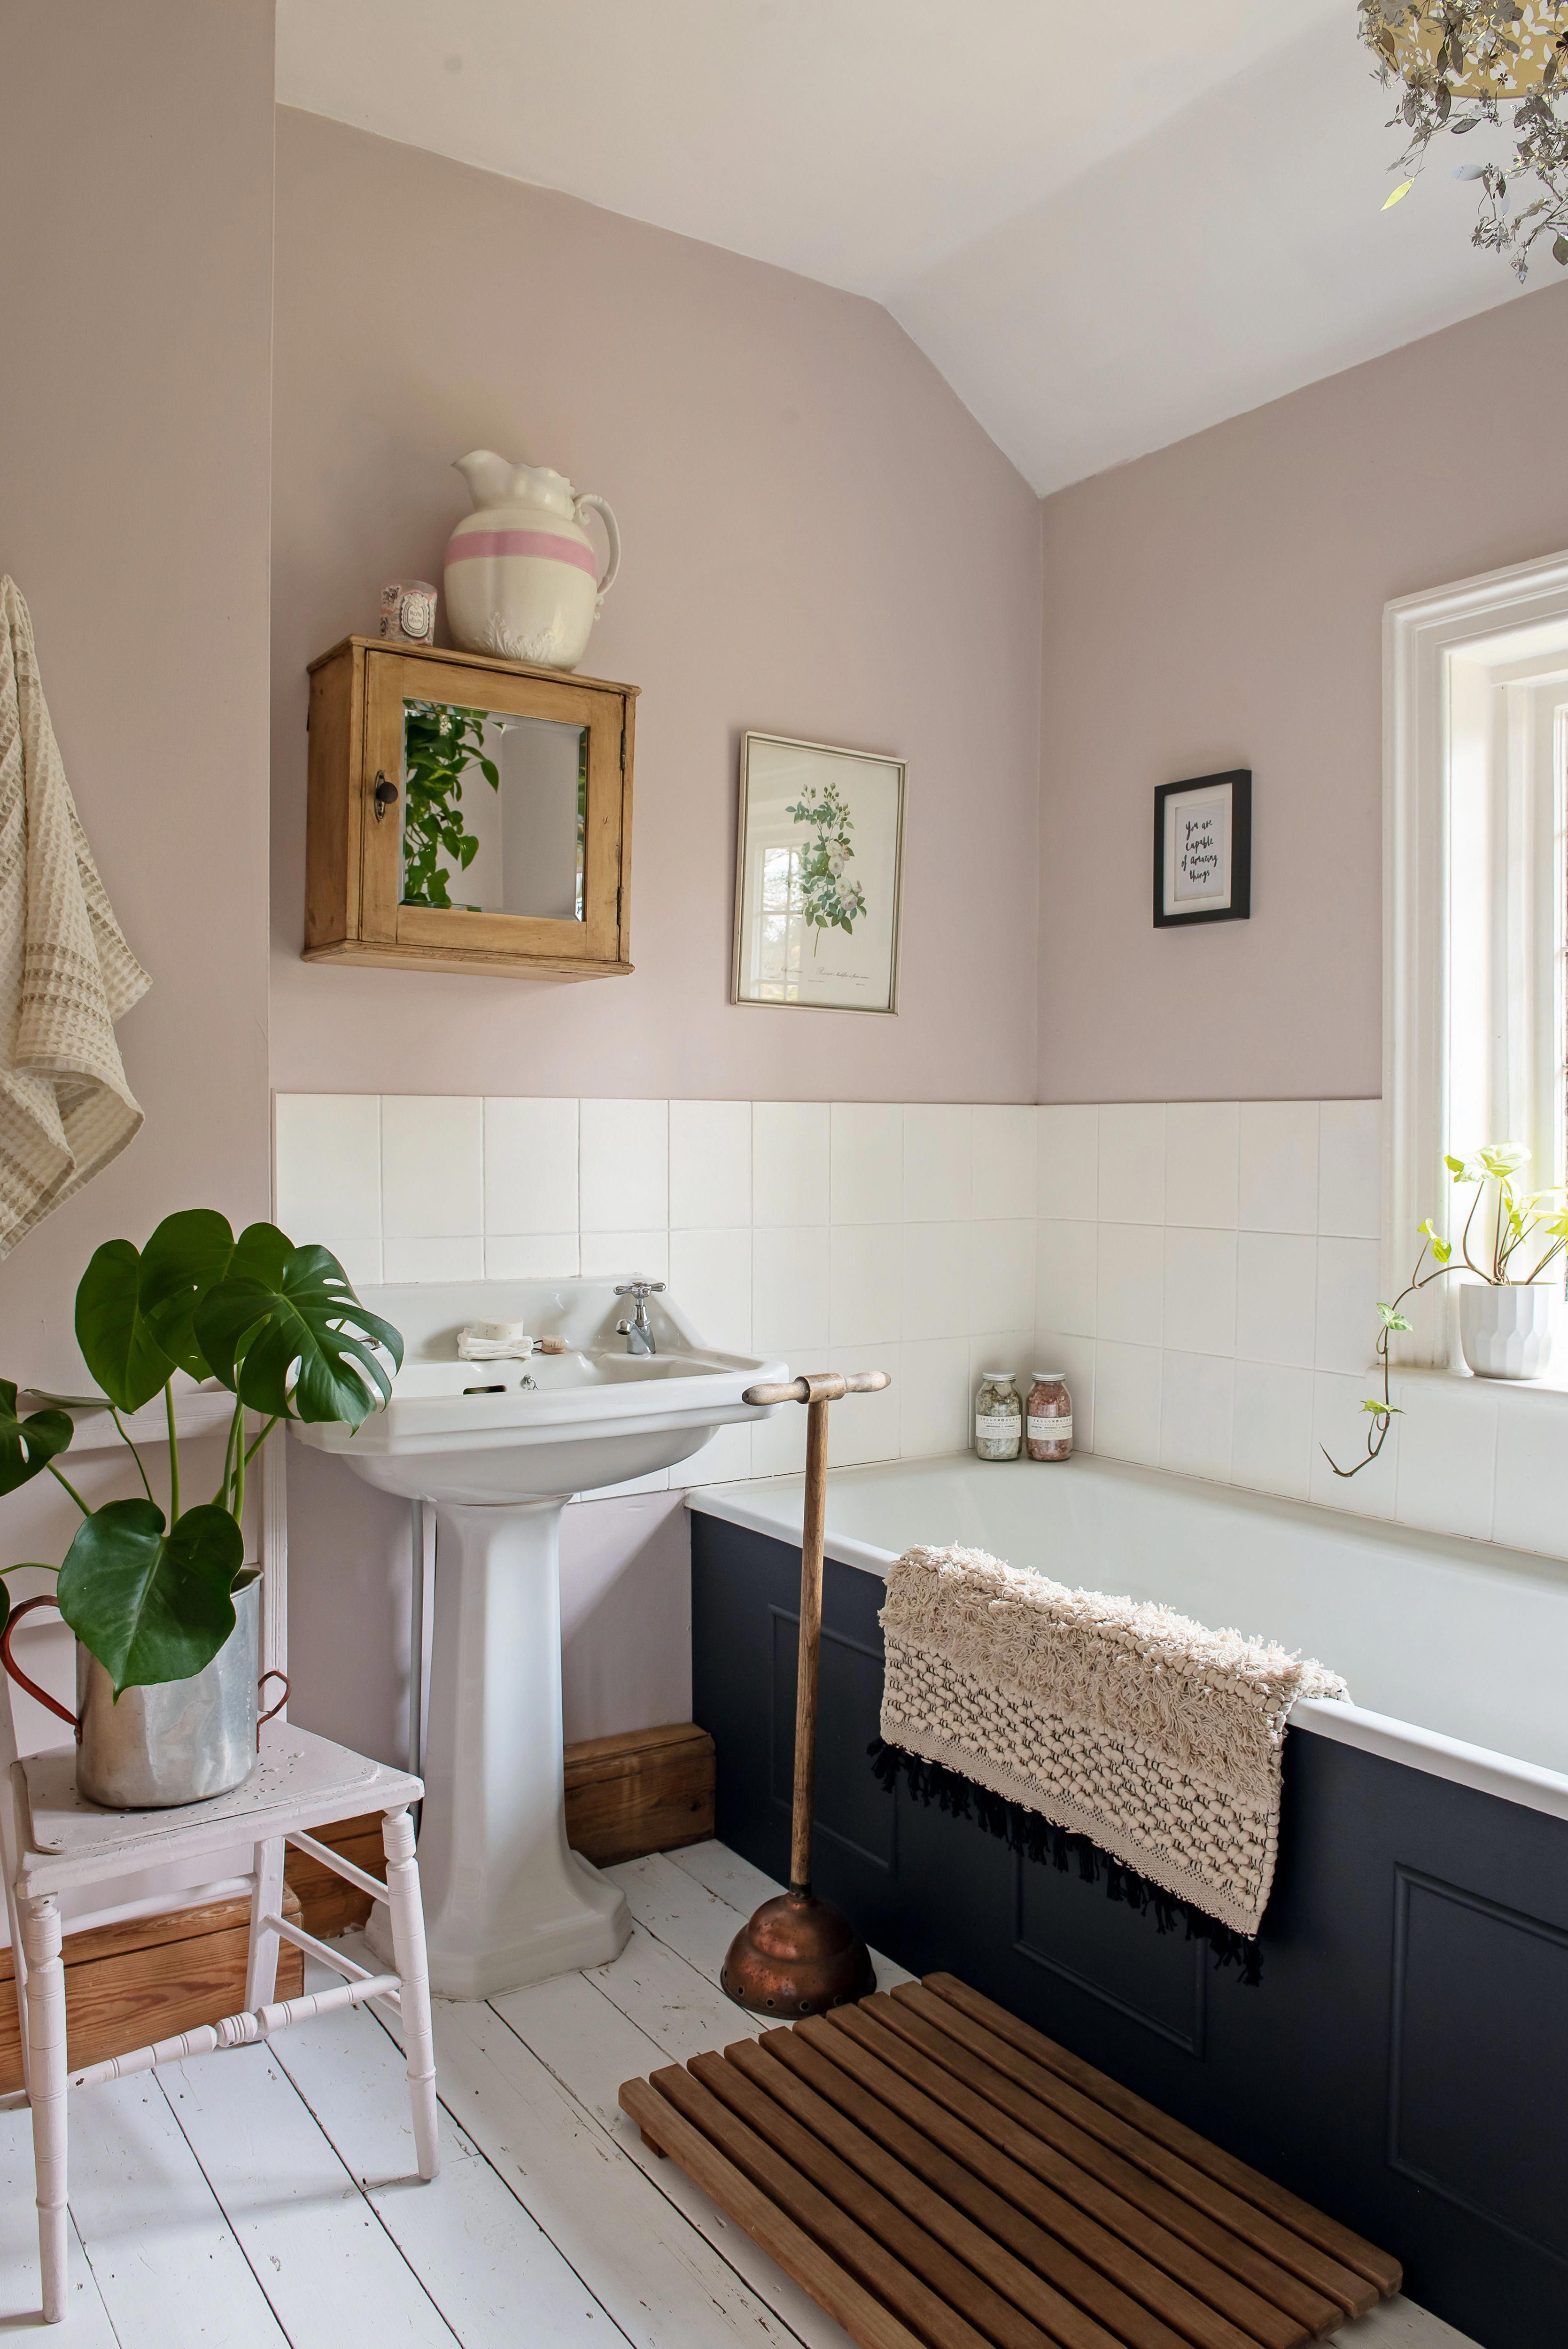 Pale Pink Walls Navy Bath And Vintage Touches Create A Soothing Tone To This Bathroom Georgian Geor In 2020 Pink Bathroom Latest Bathroom Designs Painting Bathroom